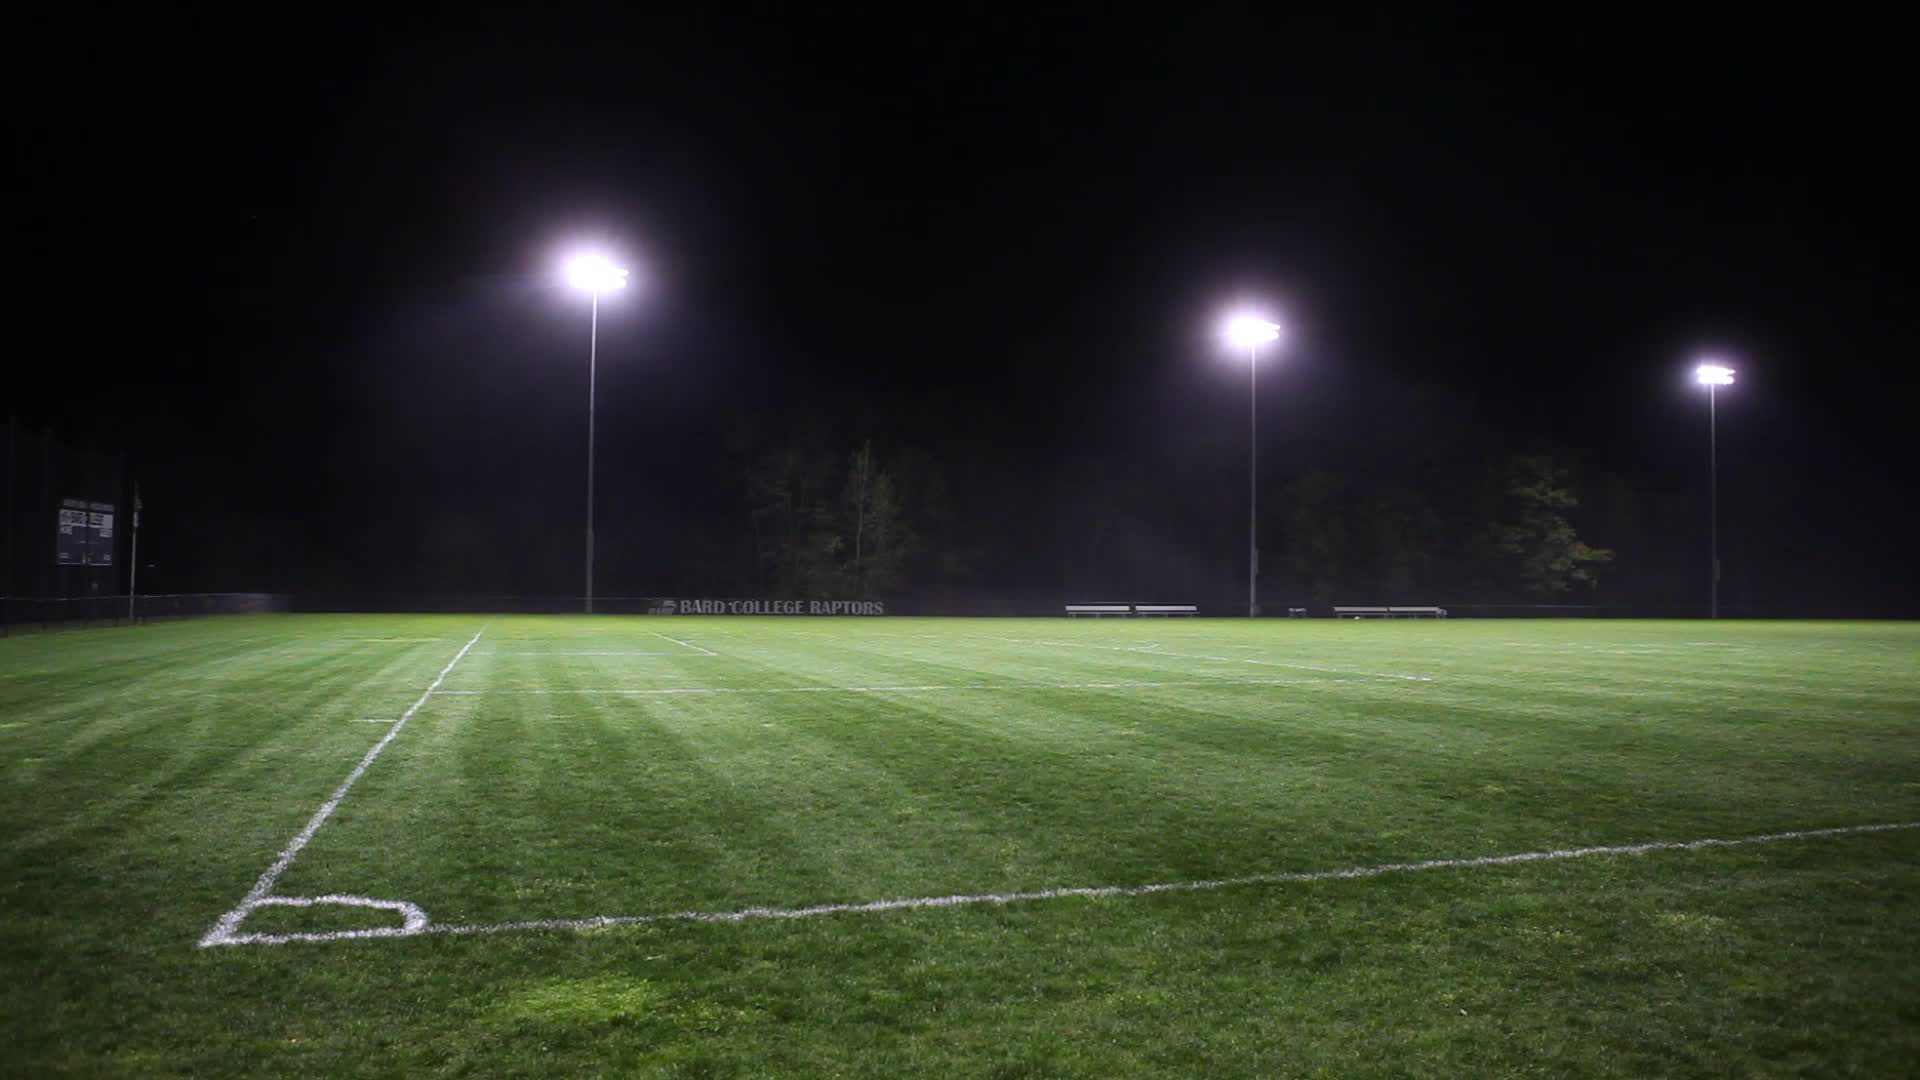 nighttime-illuminated-soccer-field-pitch-footage-023627543_prevstill